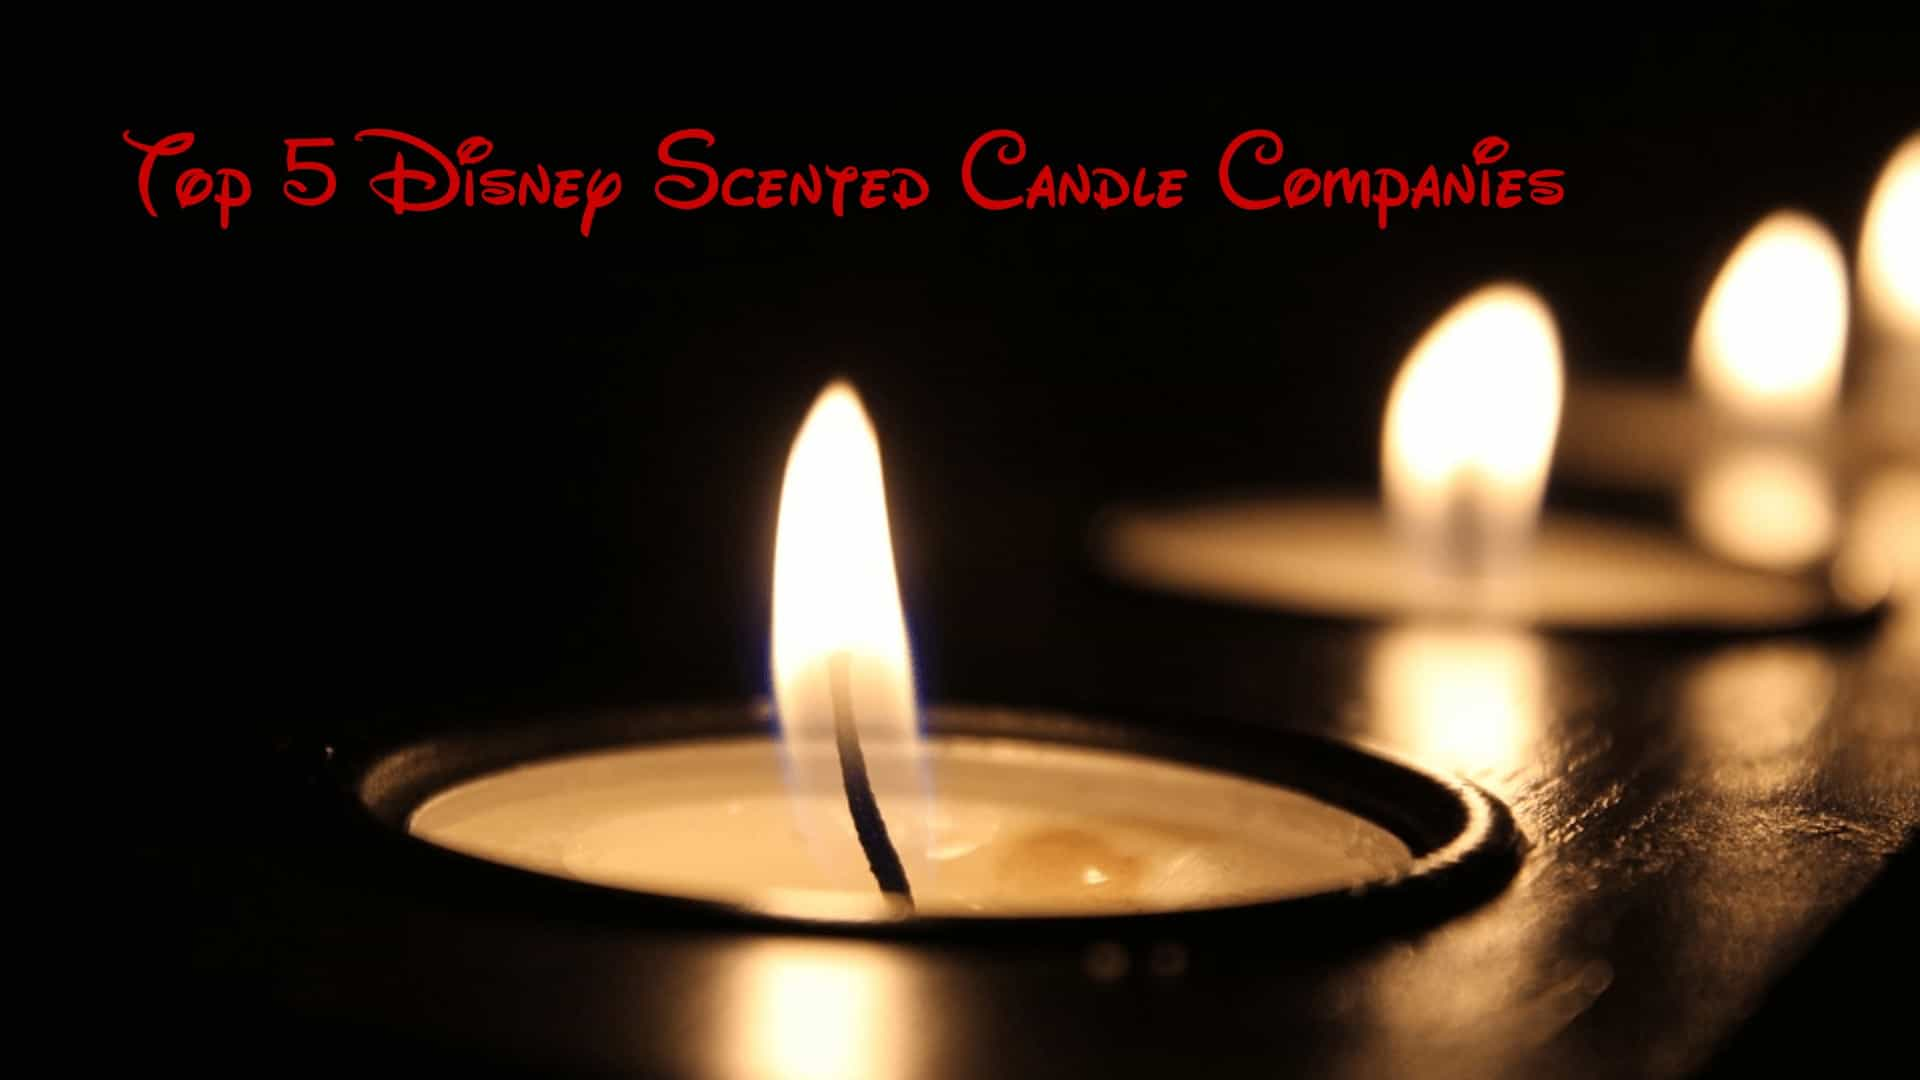 Best Disney Scented Candle Companies